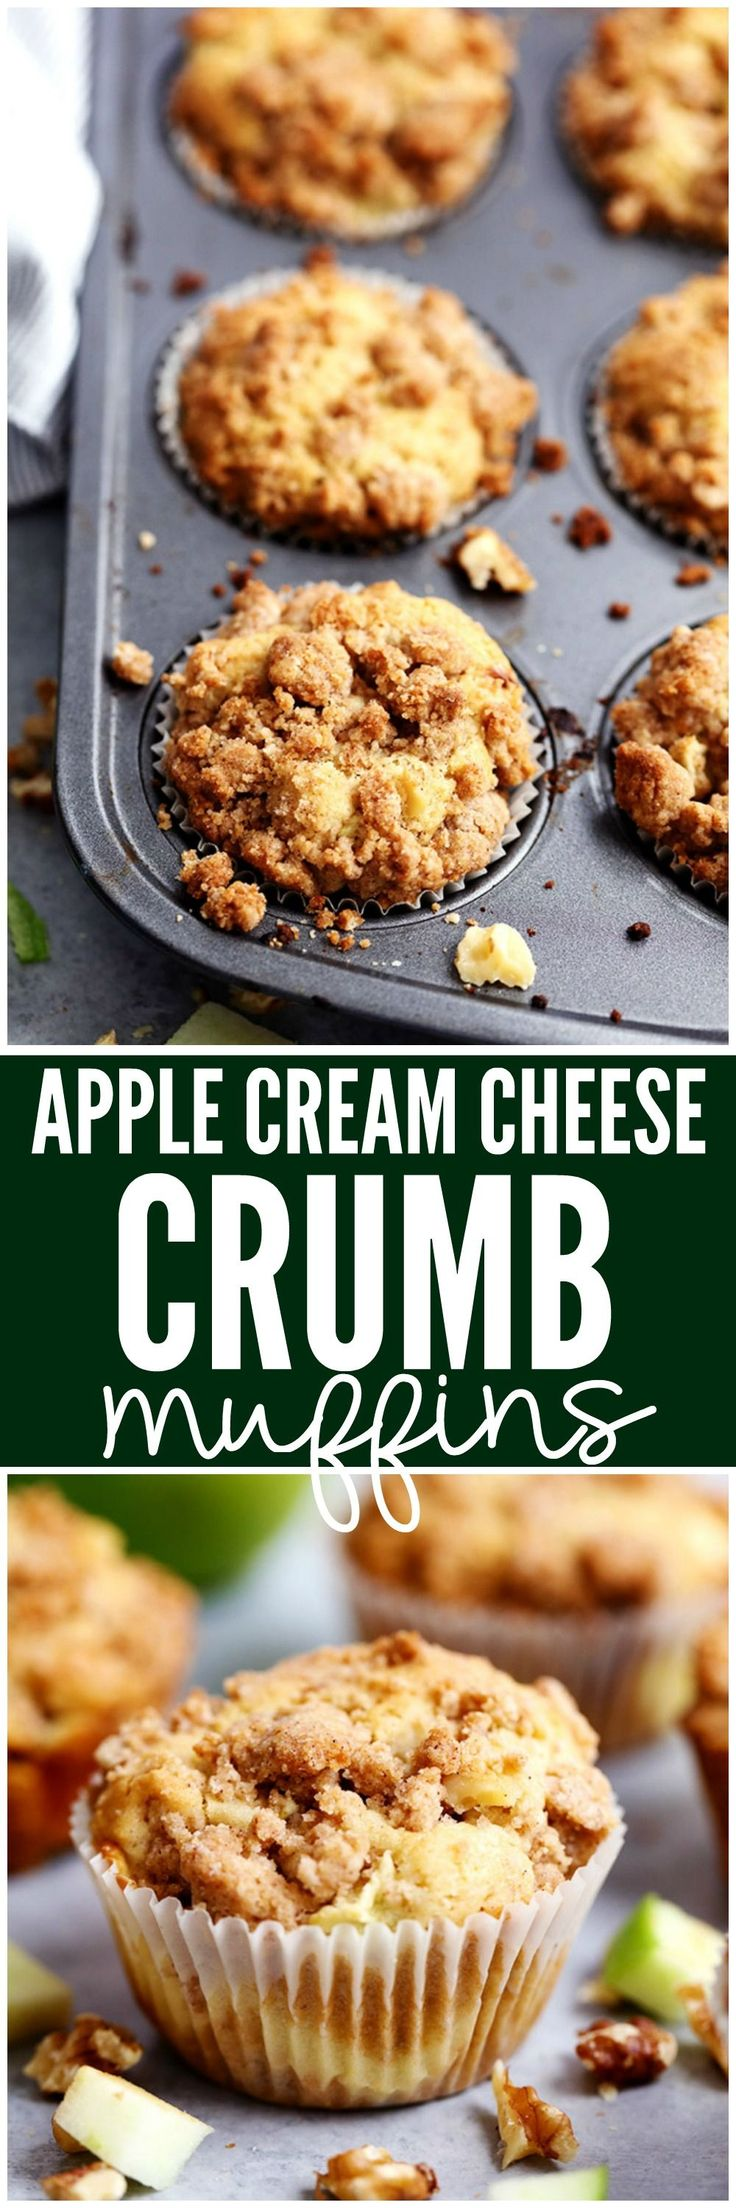 Apple Cream Cheese Crumb Muffins